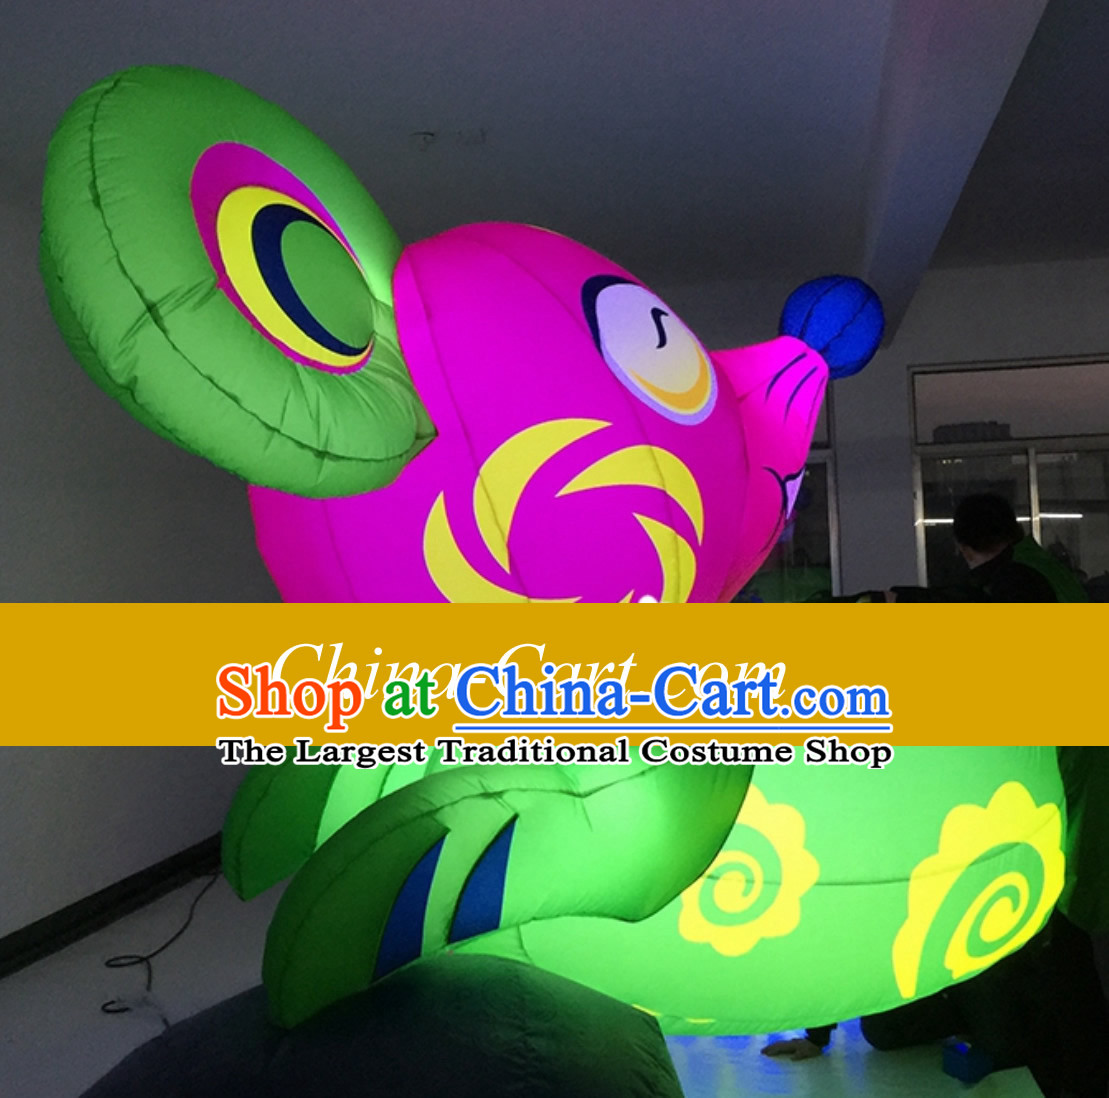 Chinese New Year Decorations Giant Inflatable Lucky Rat Complete Set